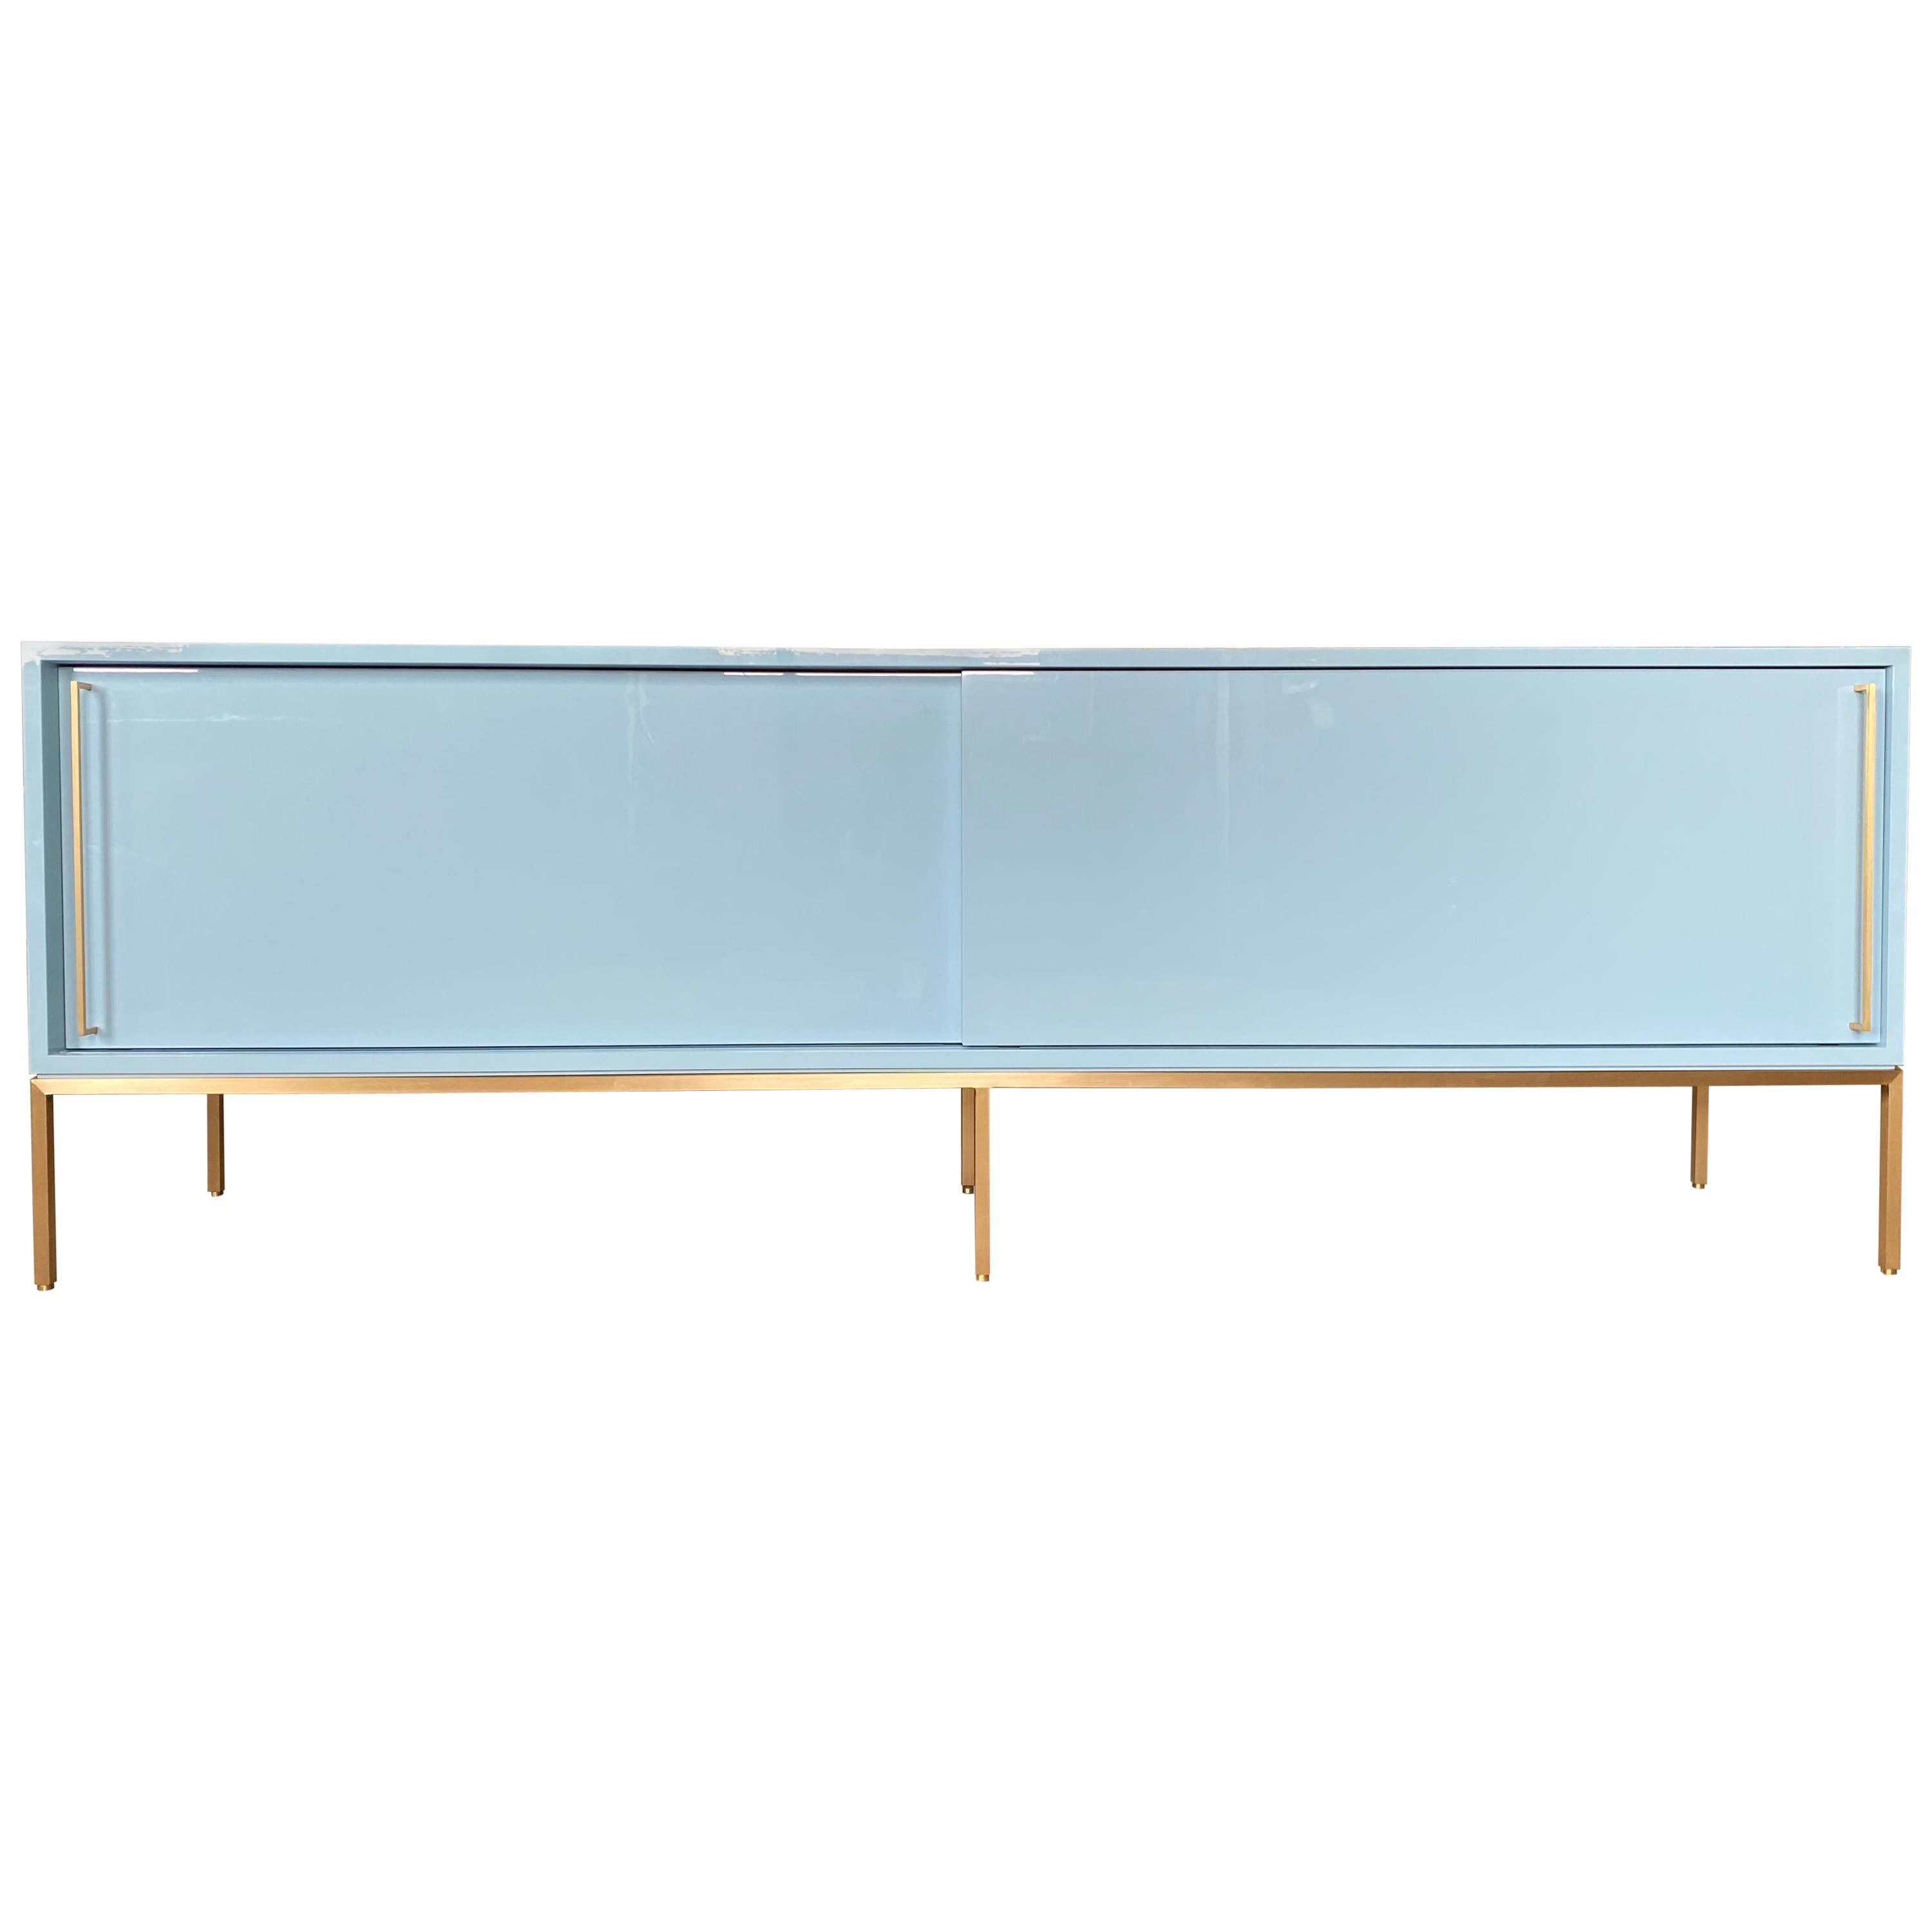 re: 379 Lacquered Credenza on Solid Brass Base